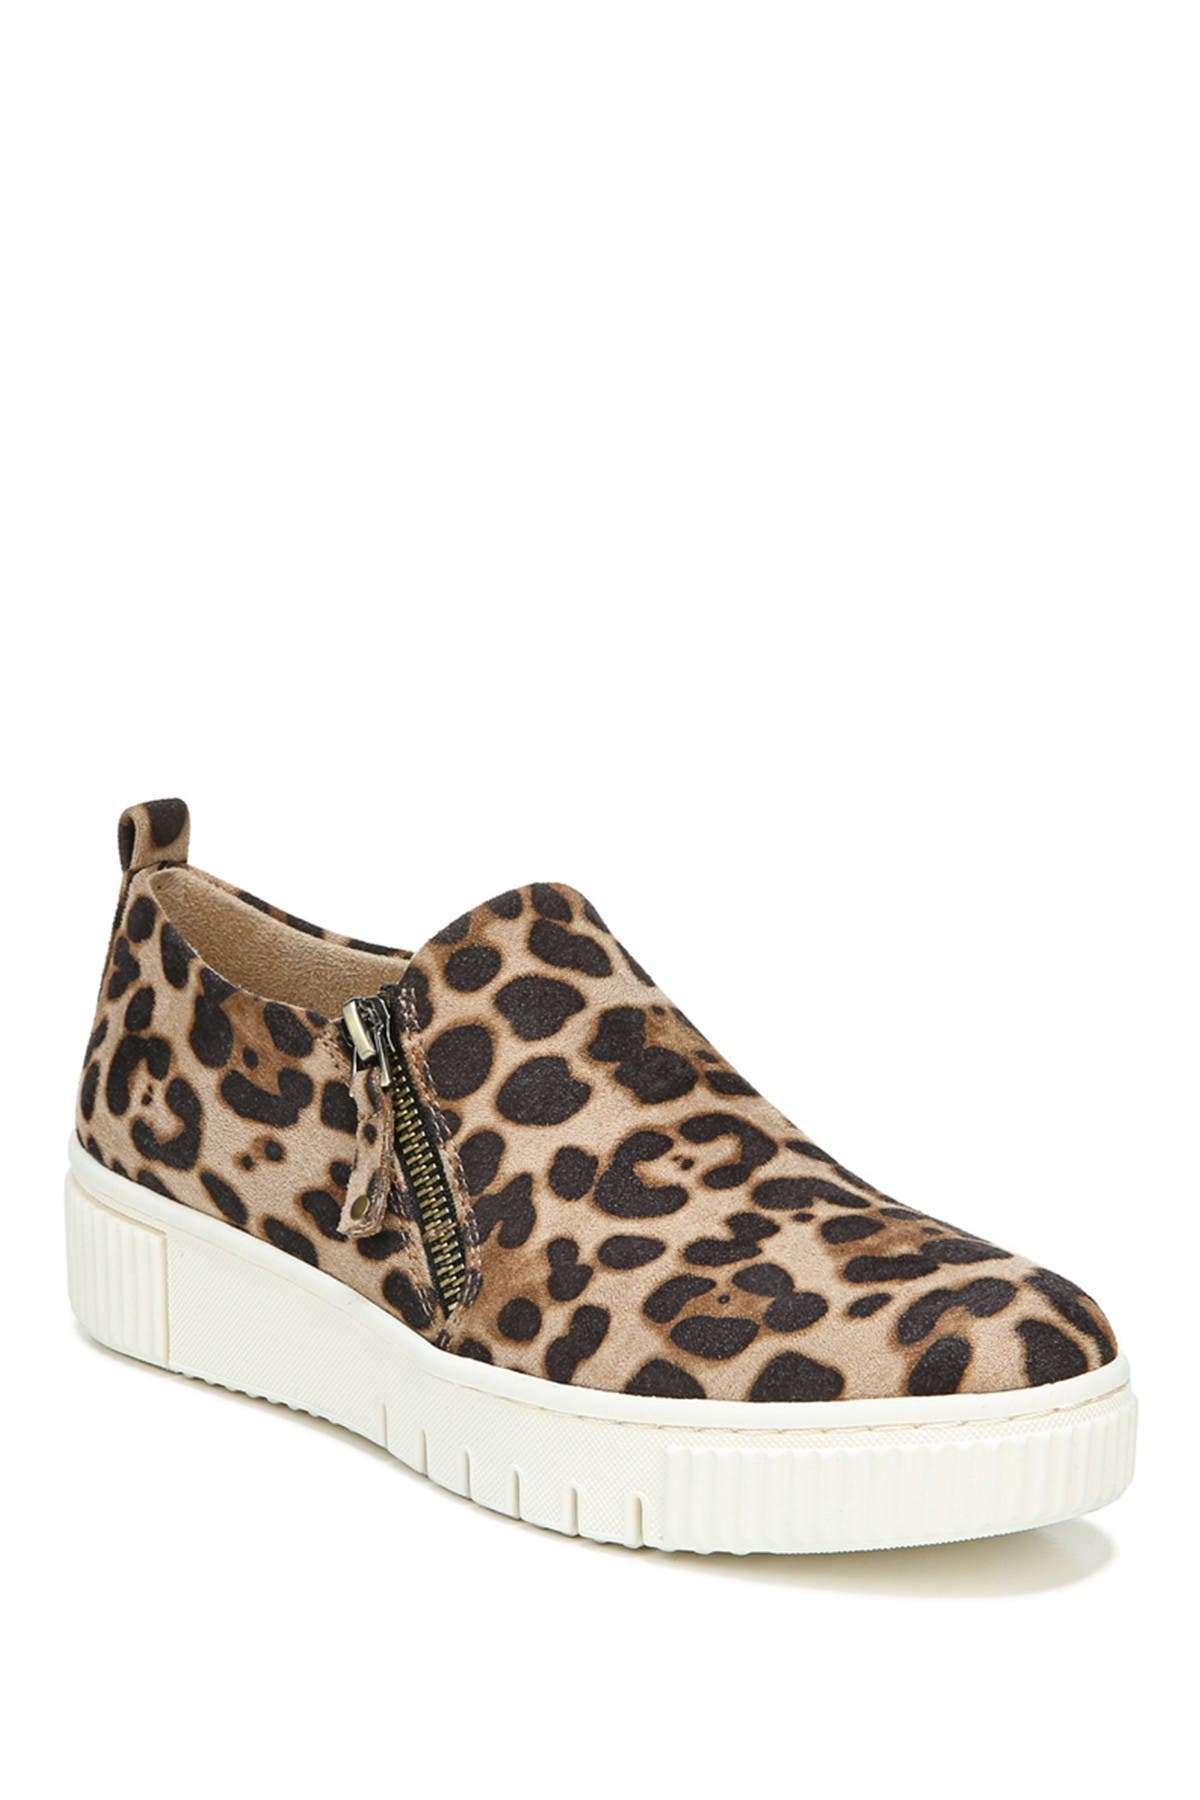 Image of SOUL Naturalizer Turner Cheetah Sneaker - Wide Width Available